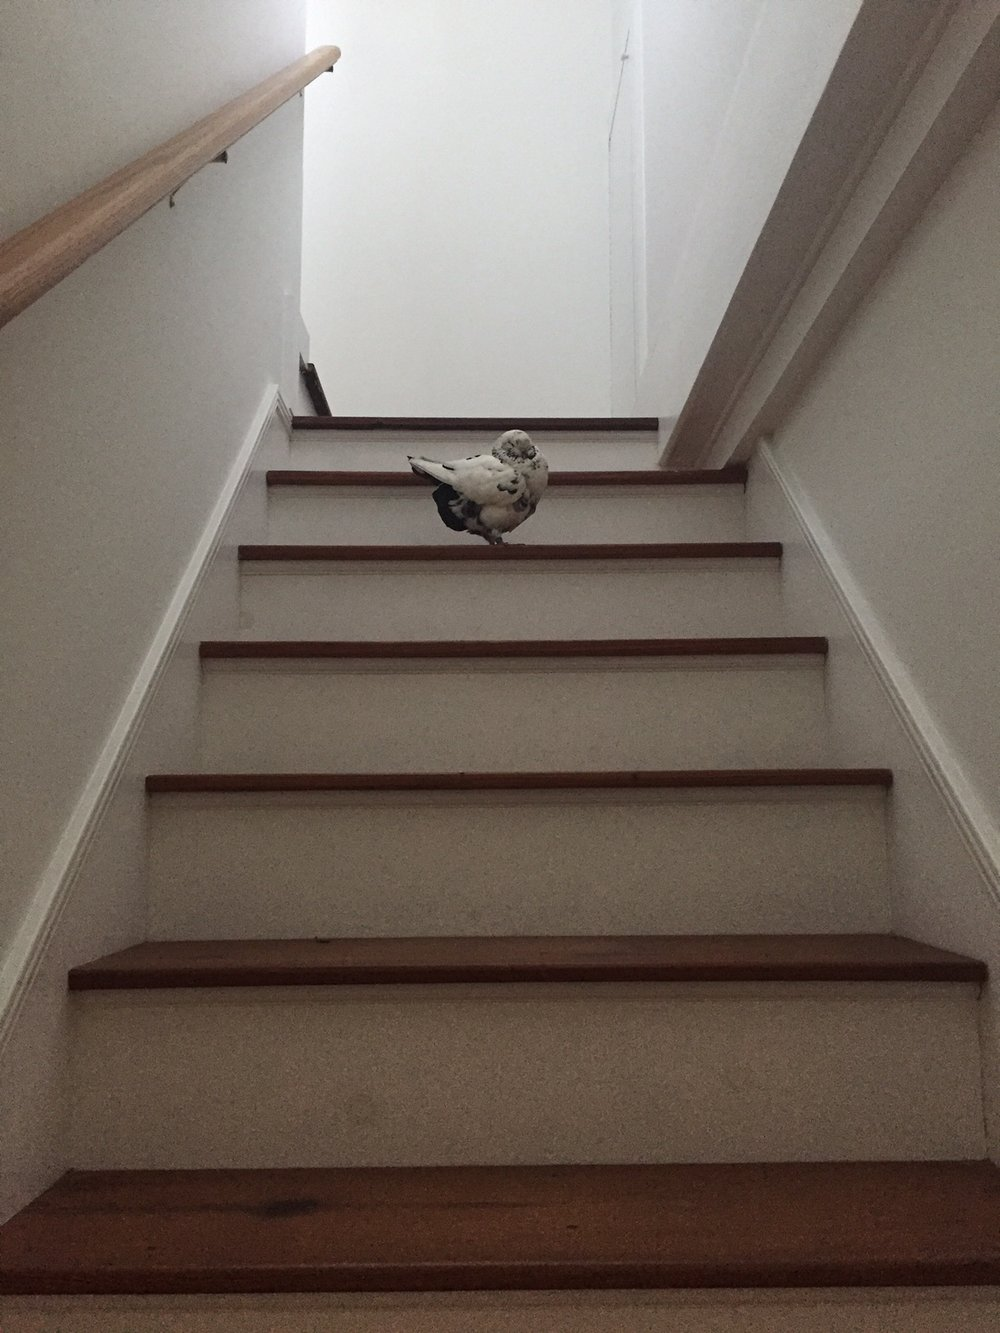 Pearl figured out how to climb the stairs. Smart girl!